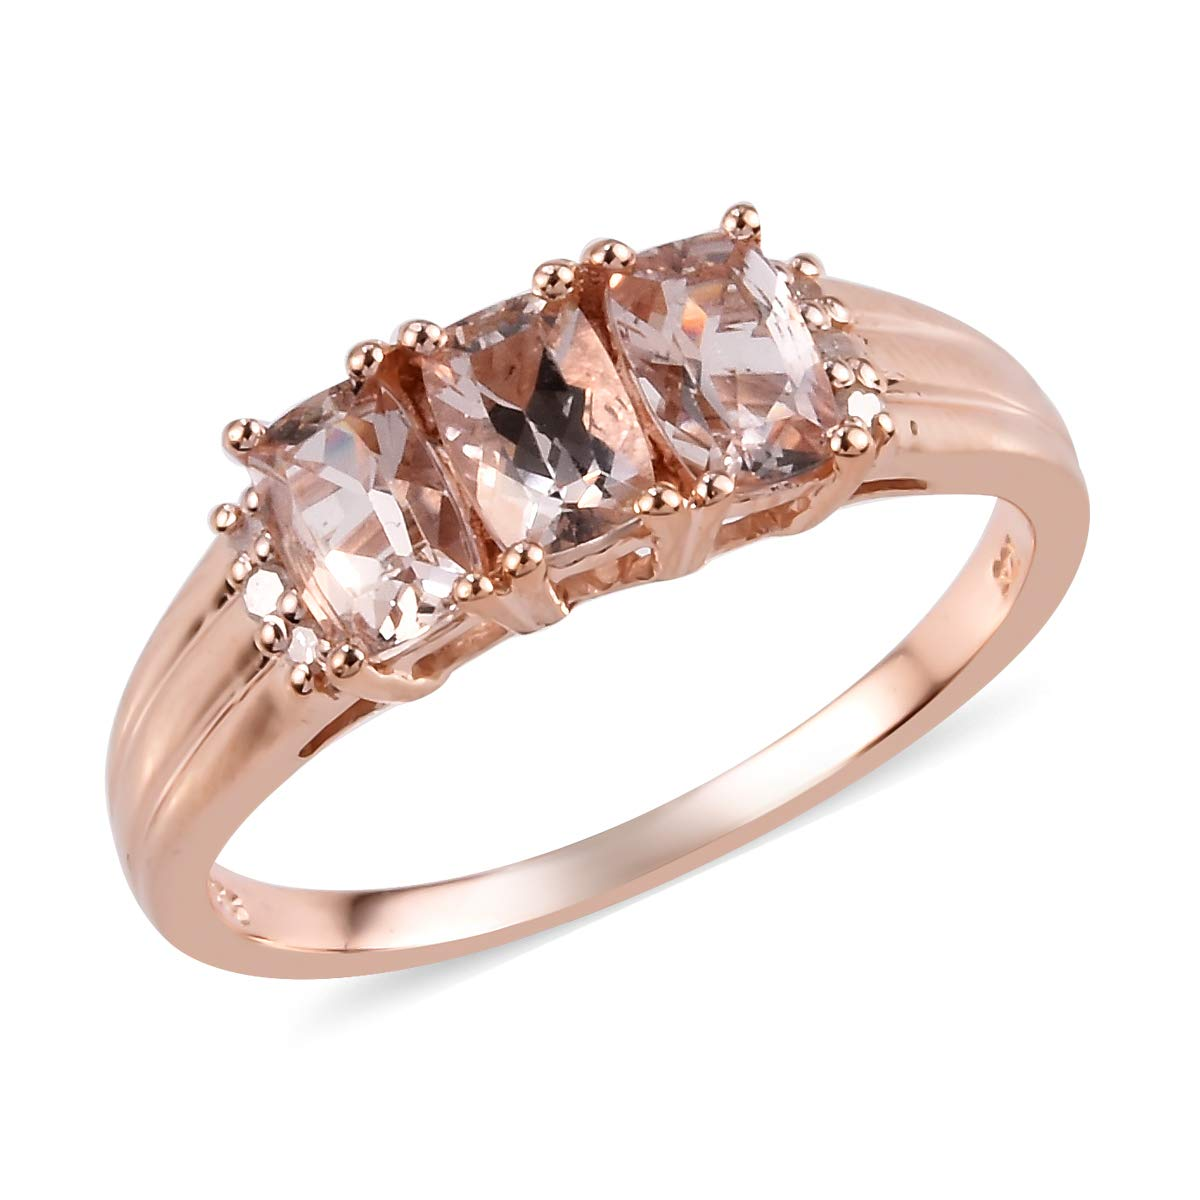 Morganite Diamond Promise Ring 925 Sterling Silver Vermeil Rose Gold Jewelry for Women Size 6 Ct 1.2 by Shop LC Delivering Joy